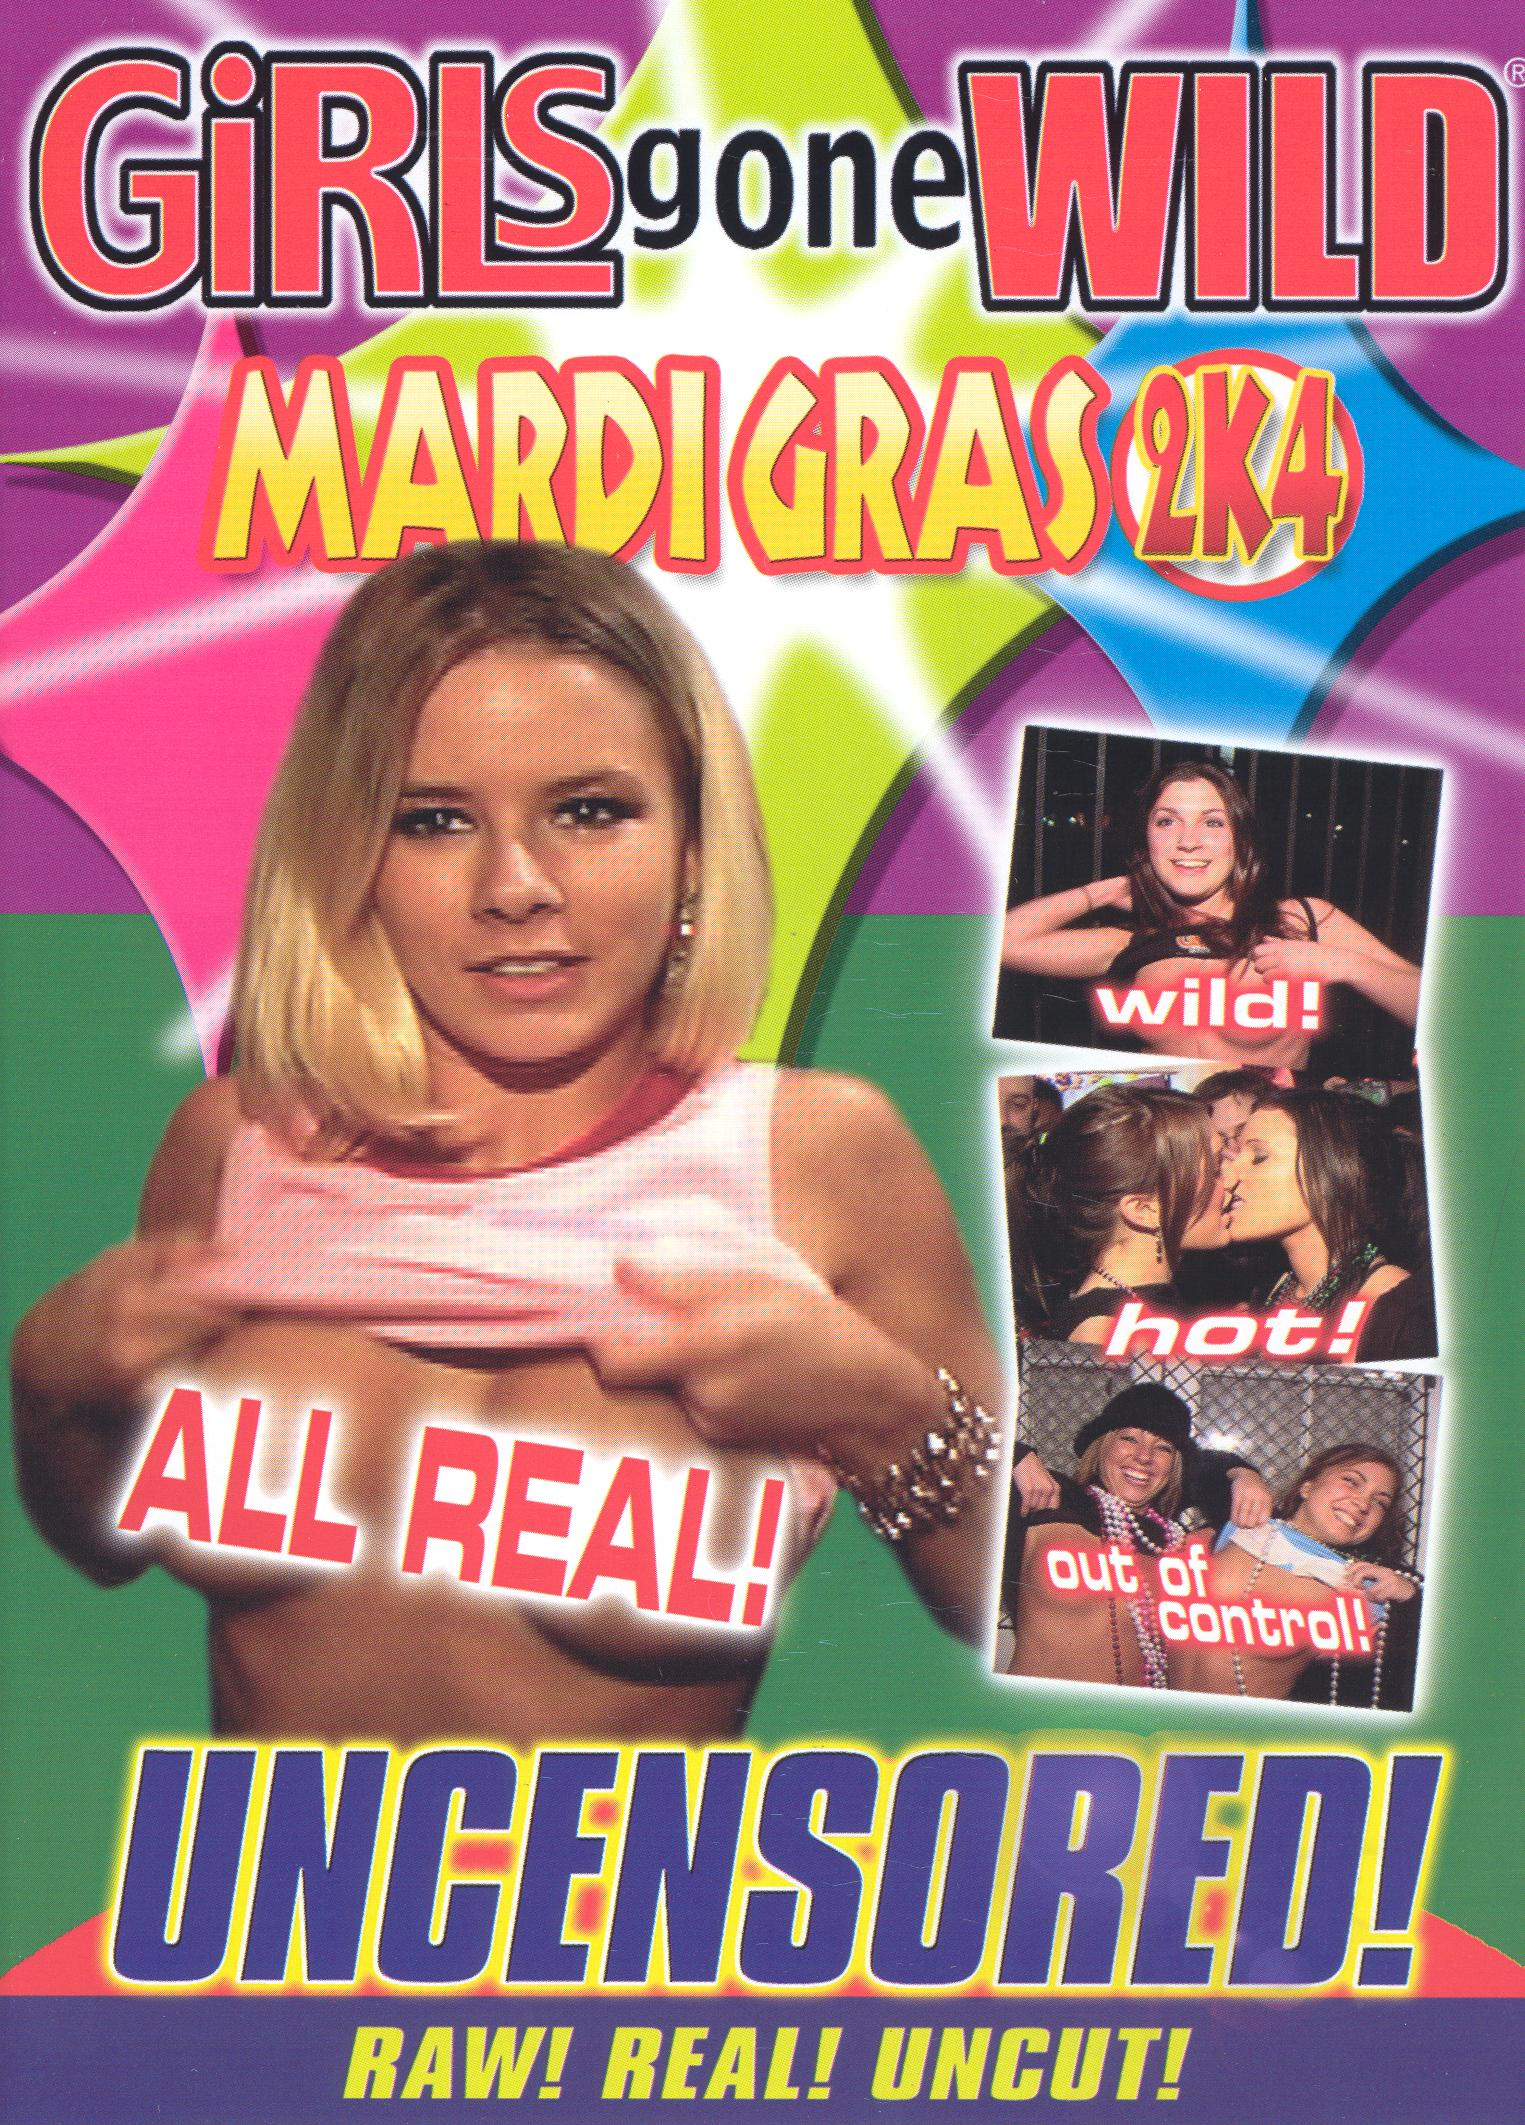 Girls Gone Wild: Mardi Gras 2K4